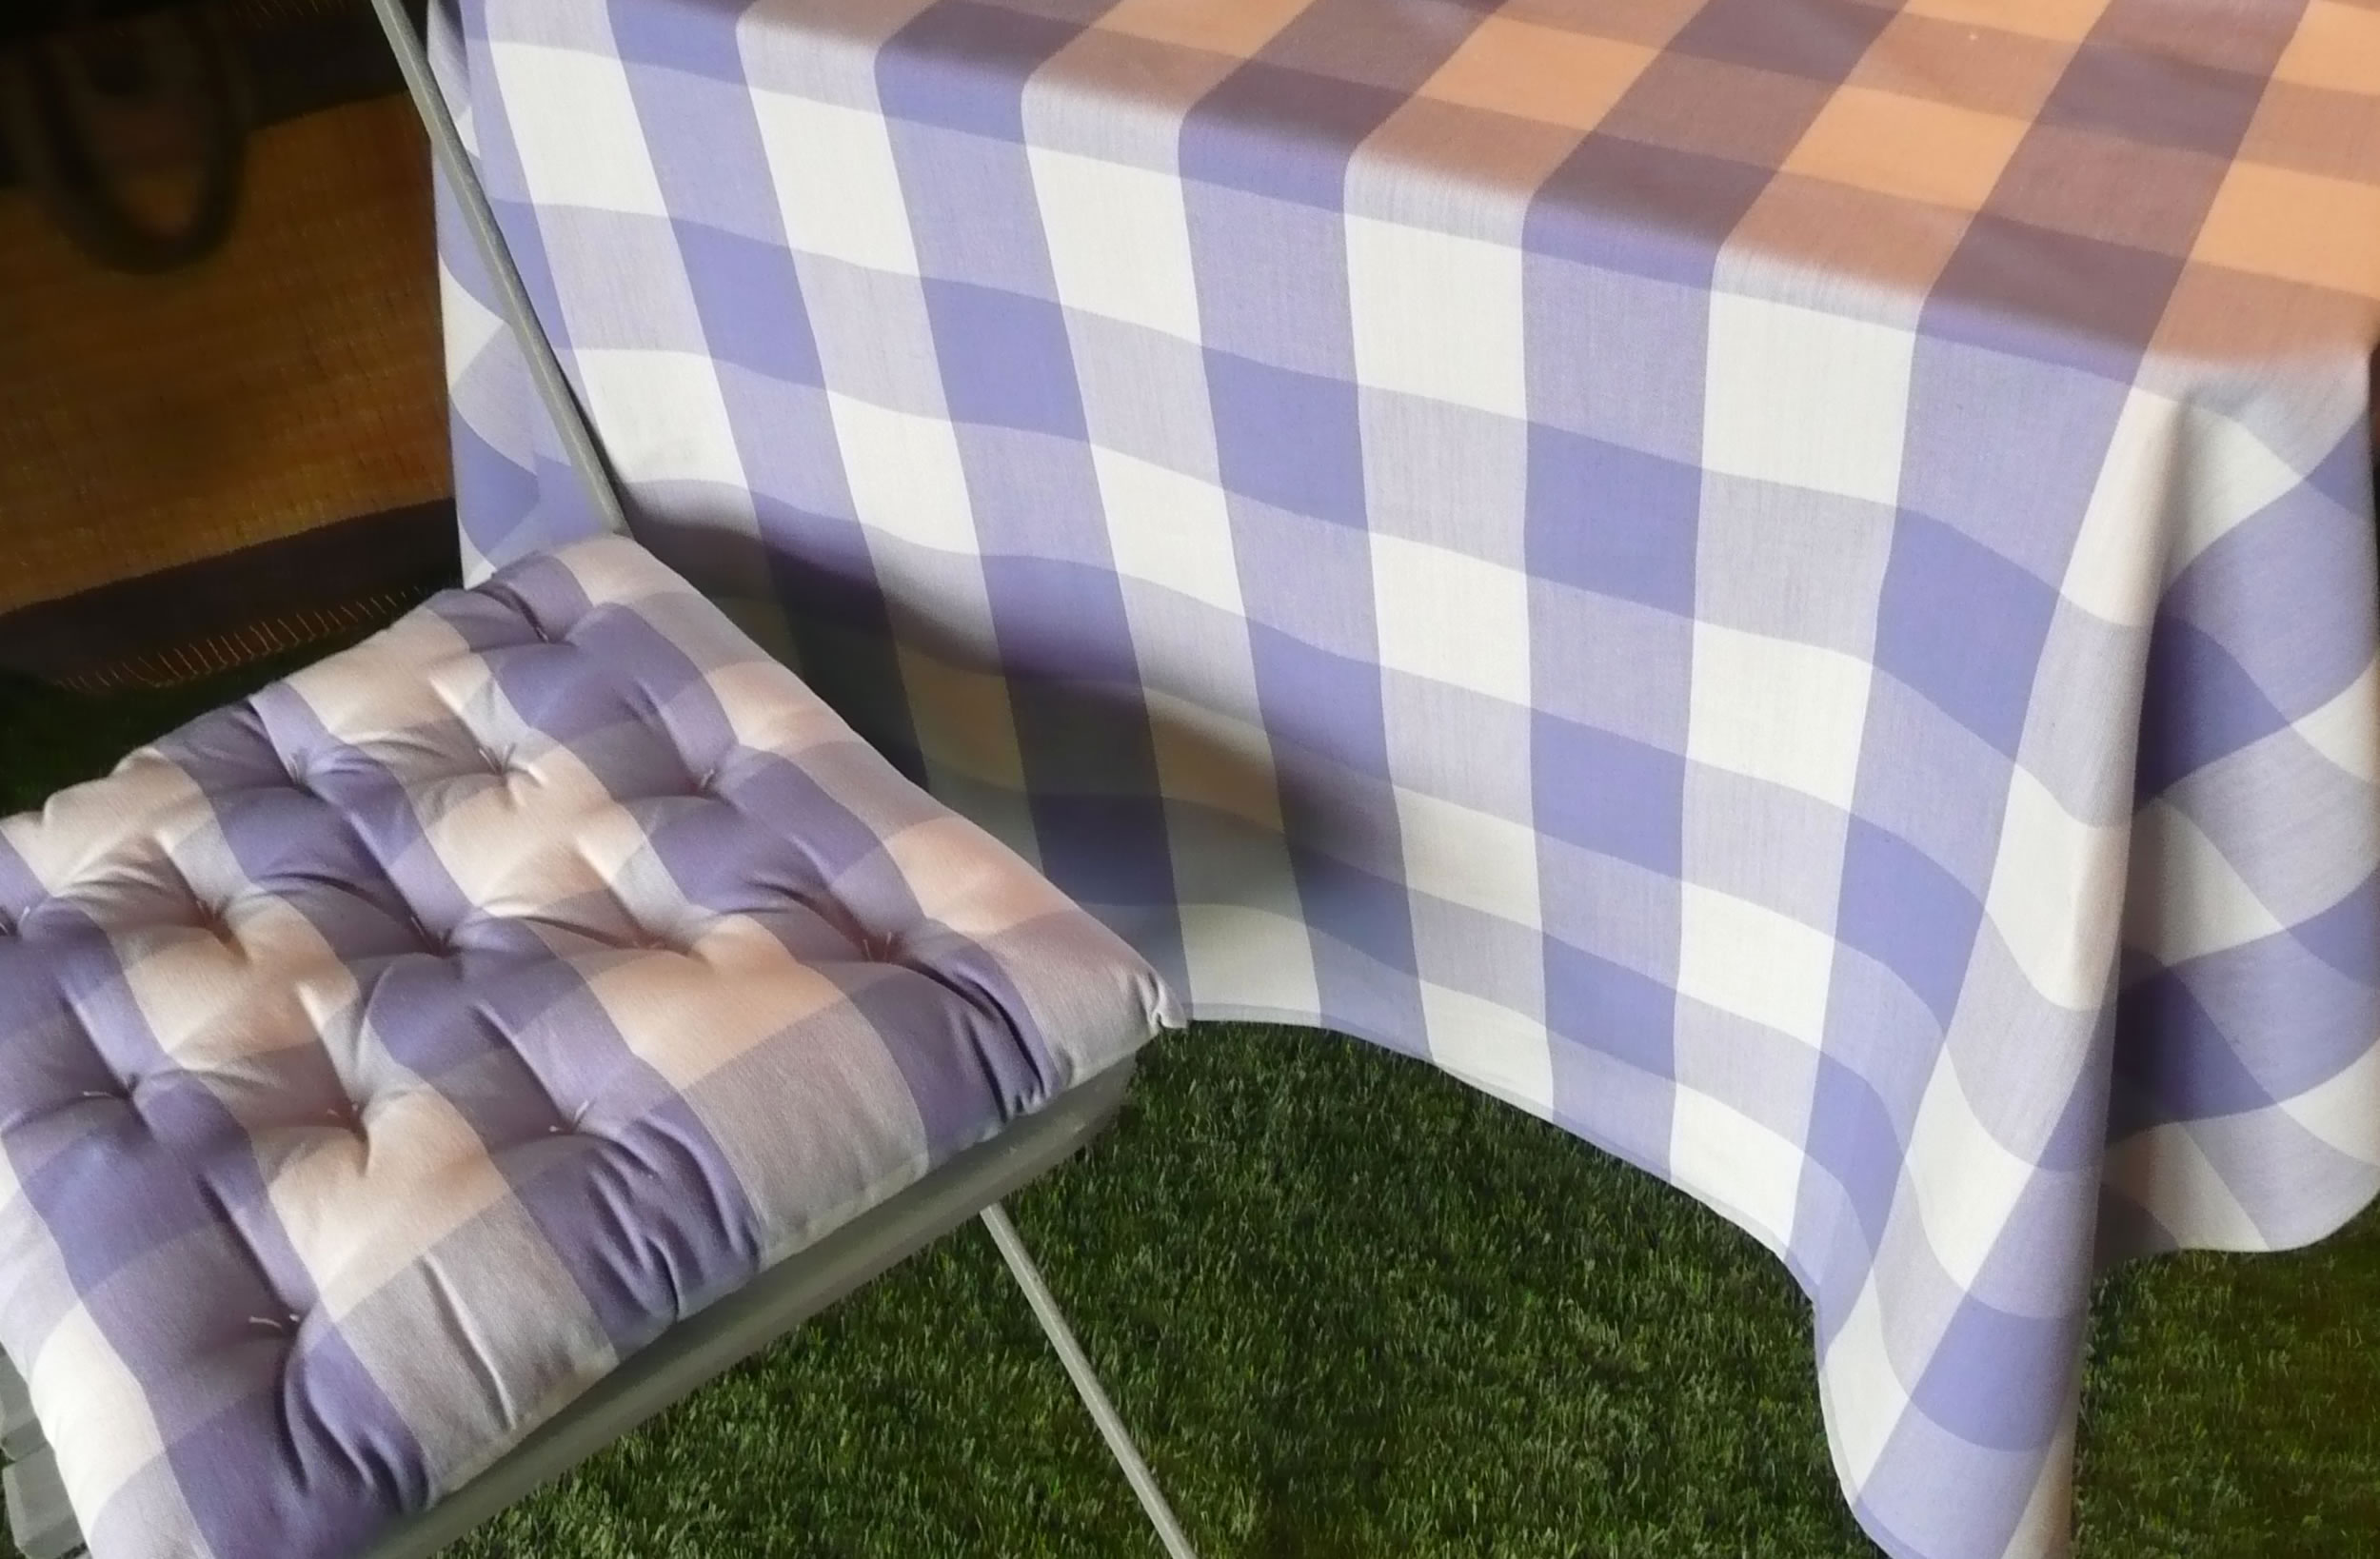 Gingham Large Check Fabric - Lavender Blue and White Checks